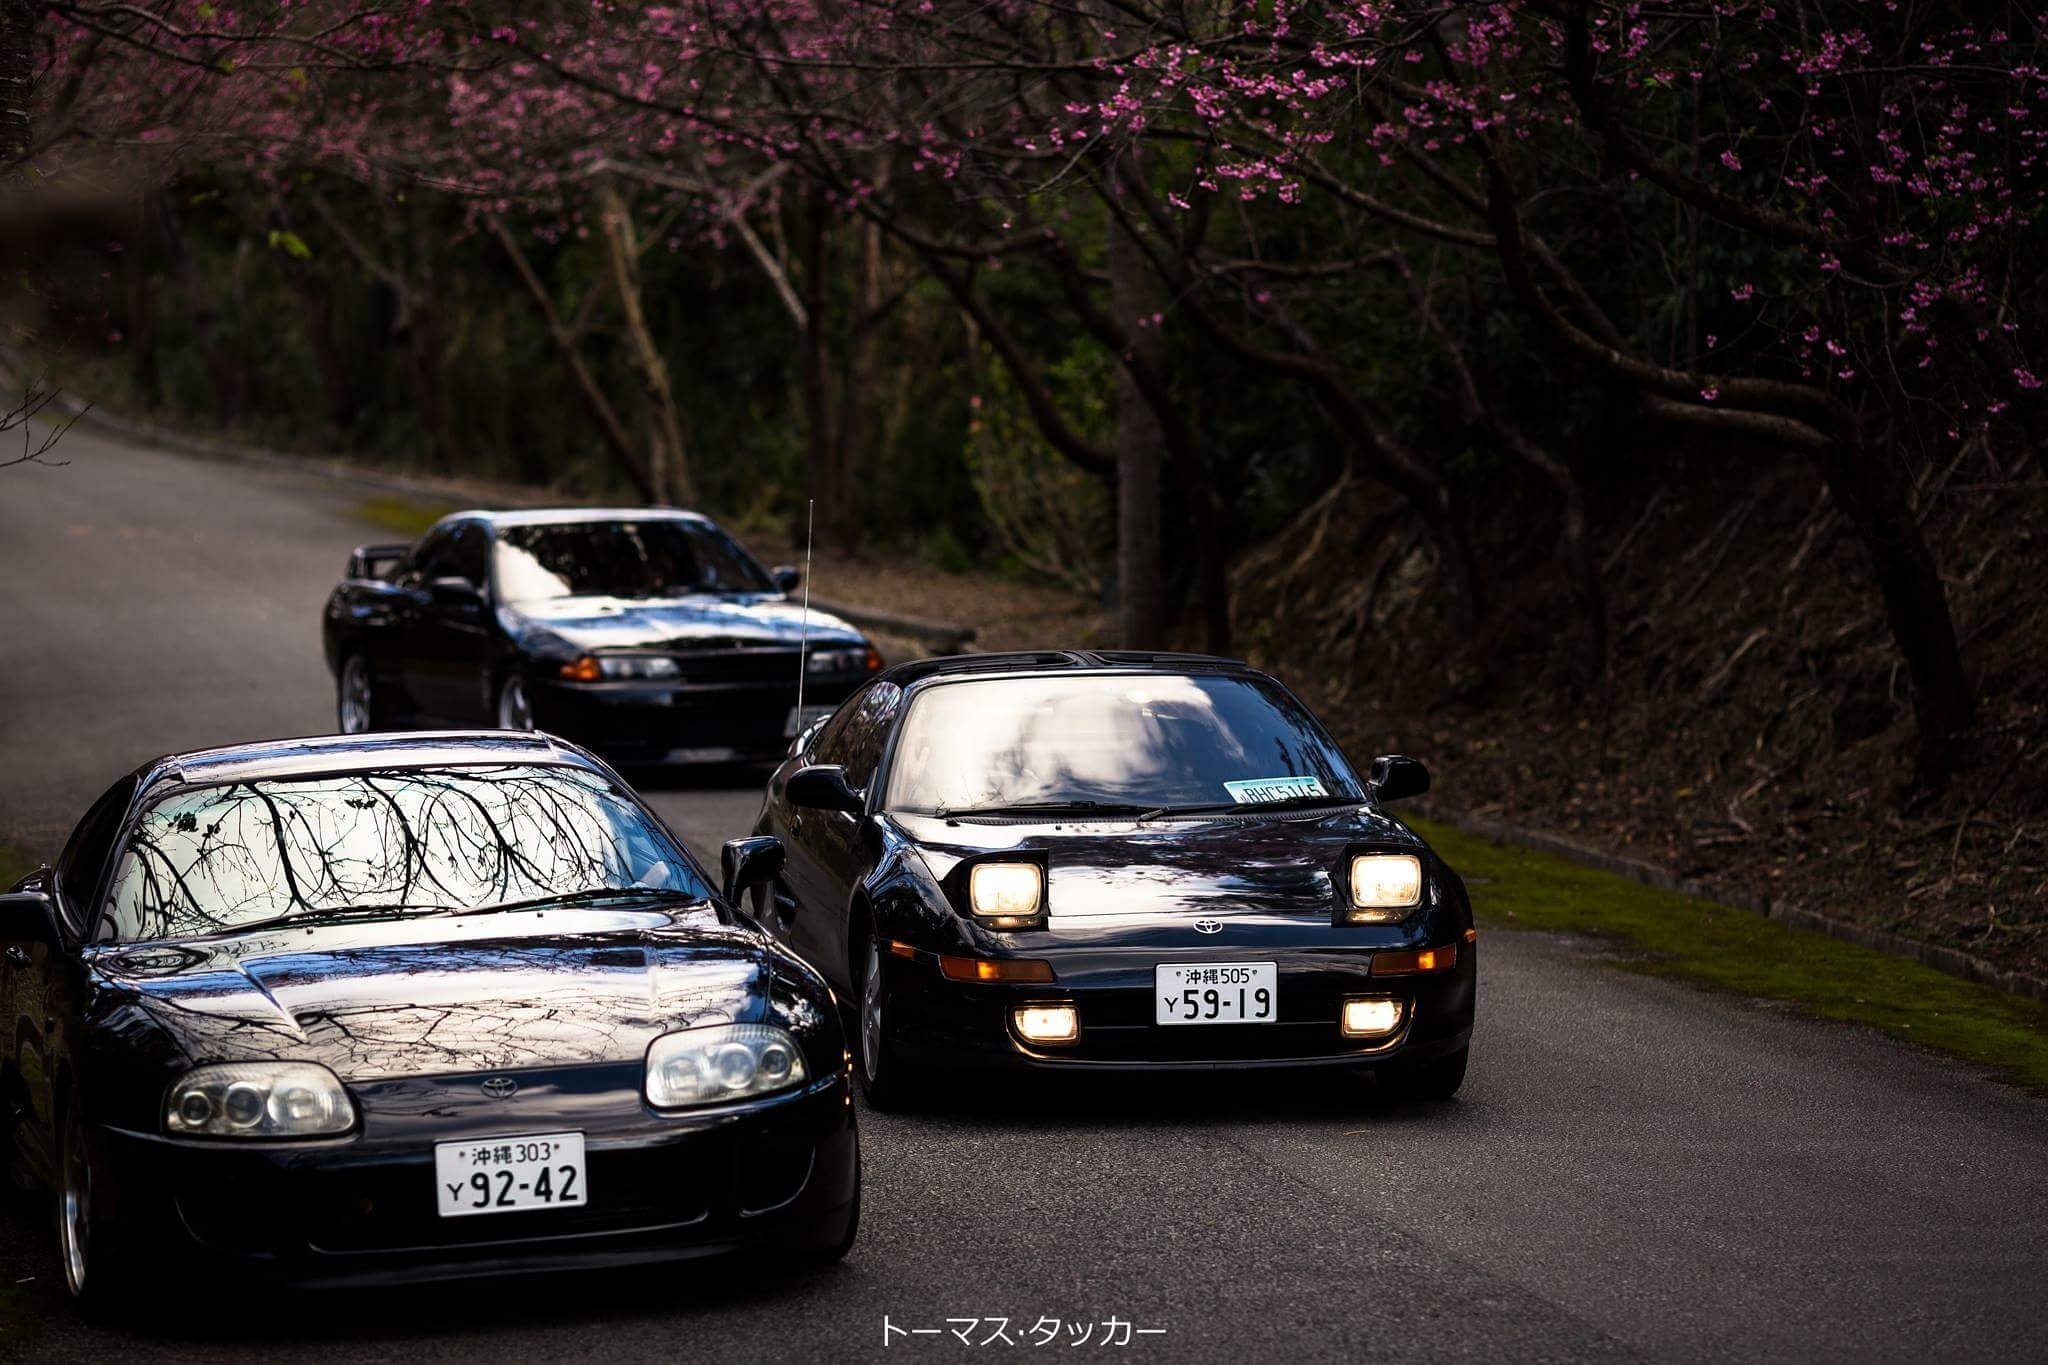 Toyota Supra, MR2, Nissan R32 GTR Okinawa HD Wallpaper From Gallsource